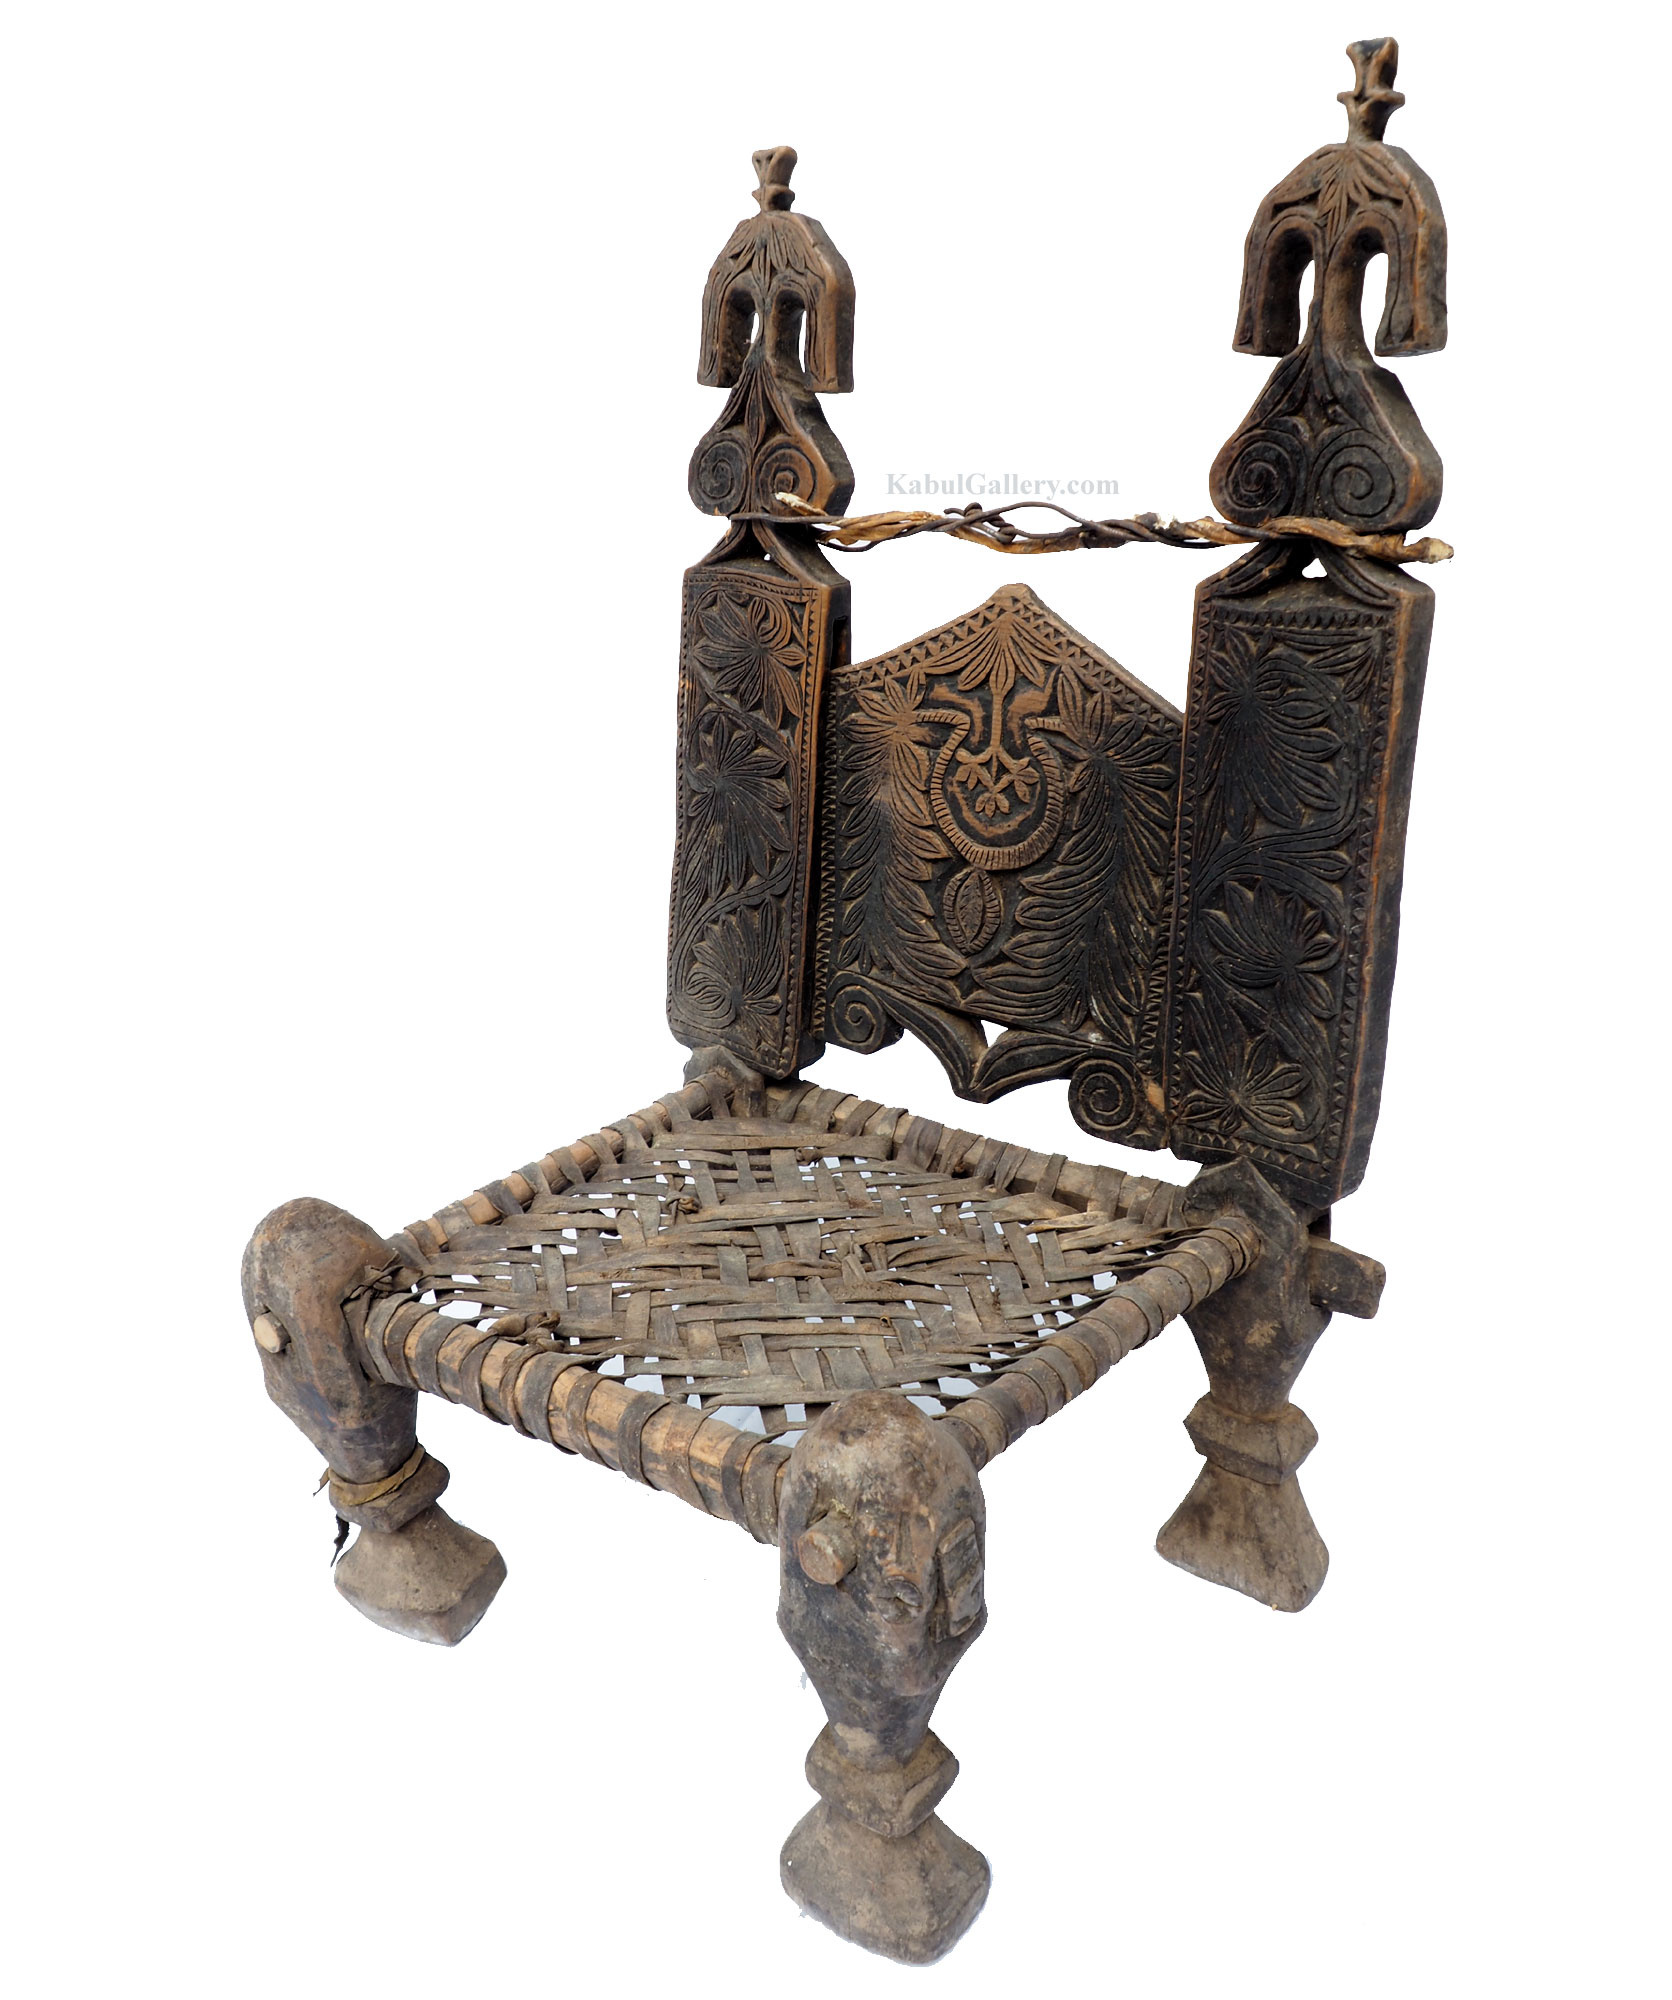 Antique Nuristan Chair Stuhl No:19/C